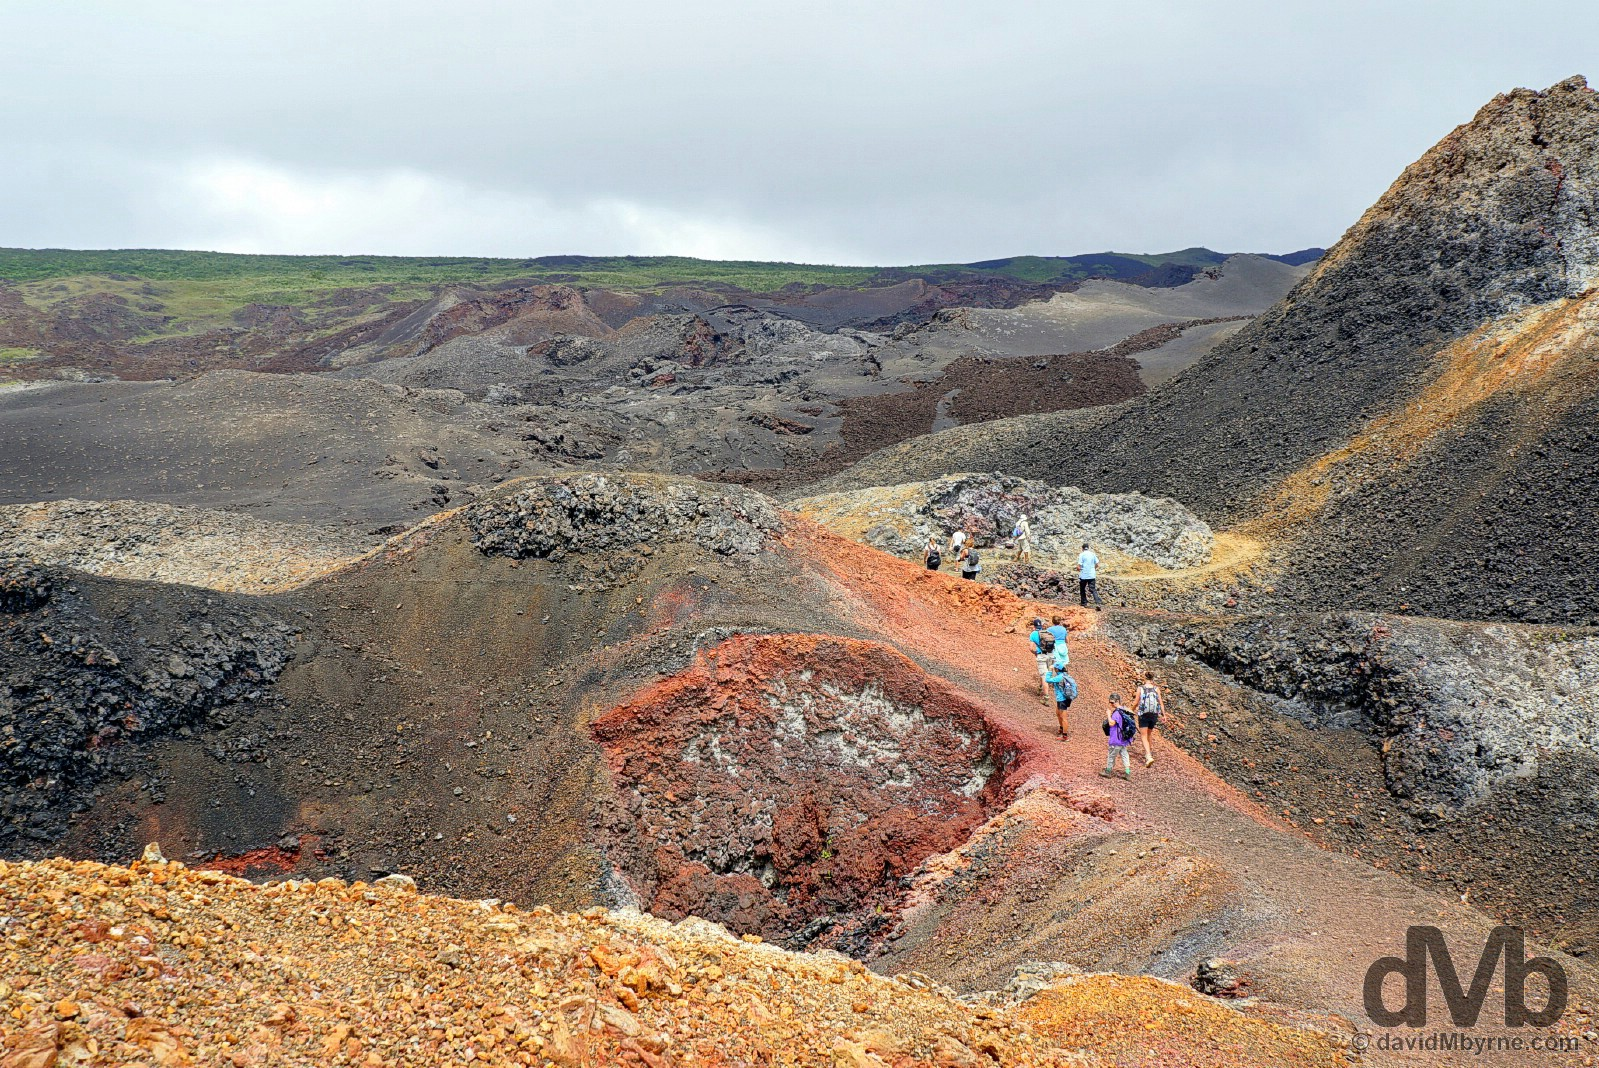 The volcanic landscape of Volcan Chico on Isla Isabela, Galapagos, Ecuador. July 20, 2015.